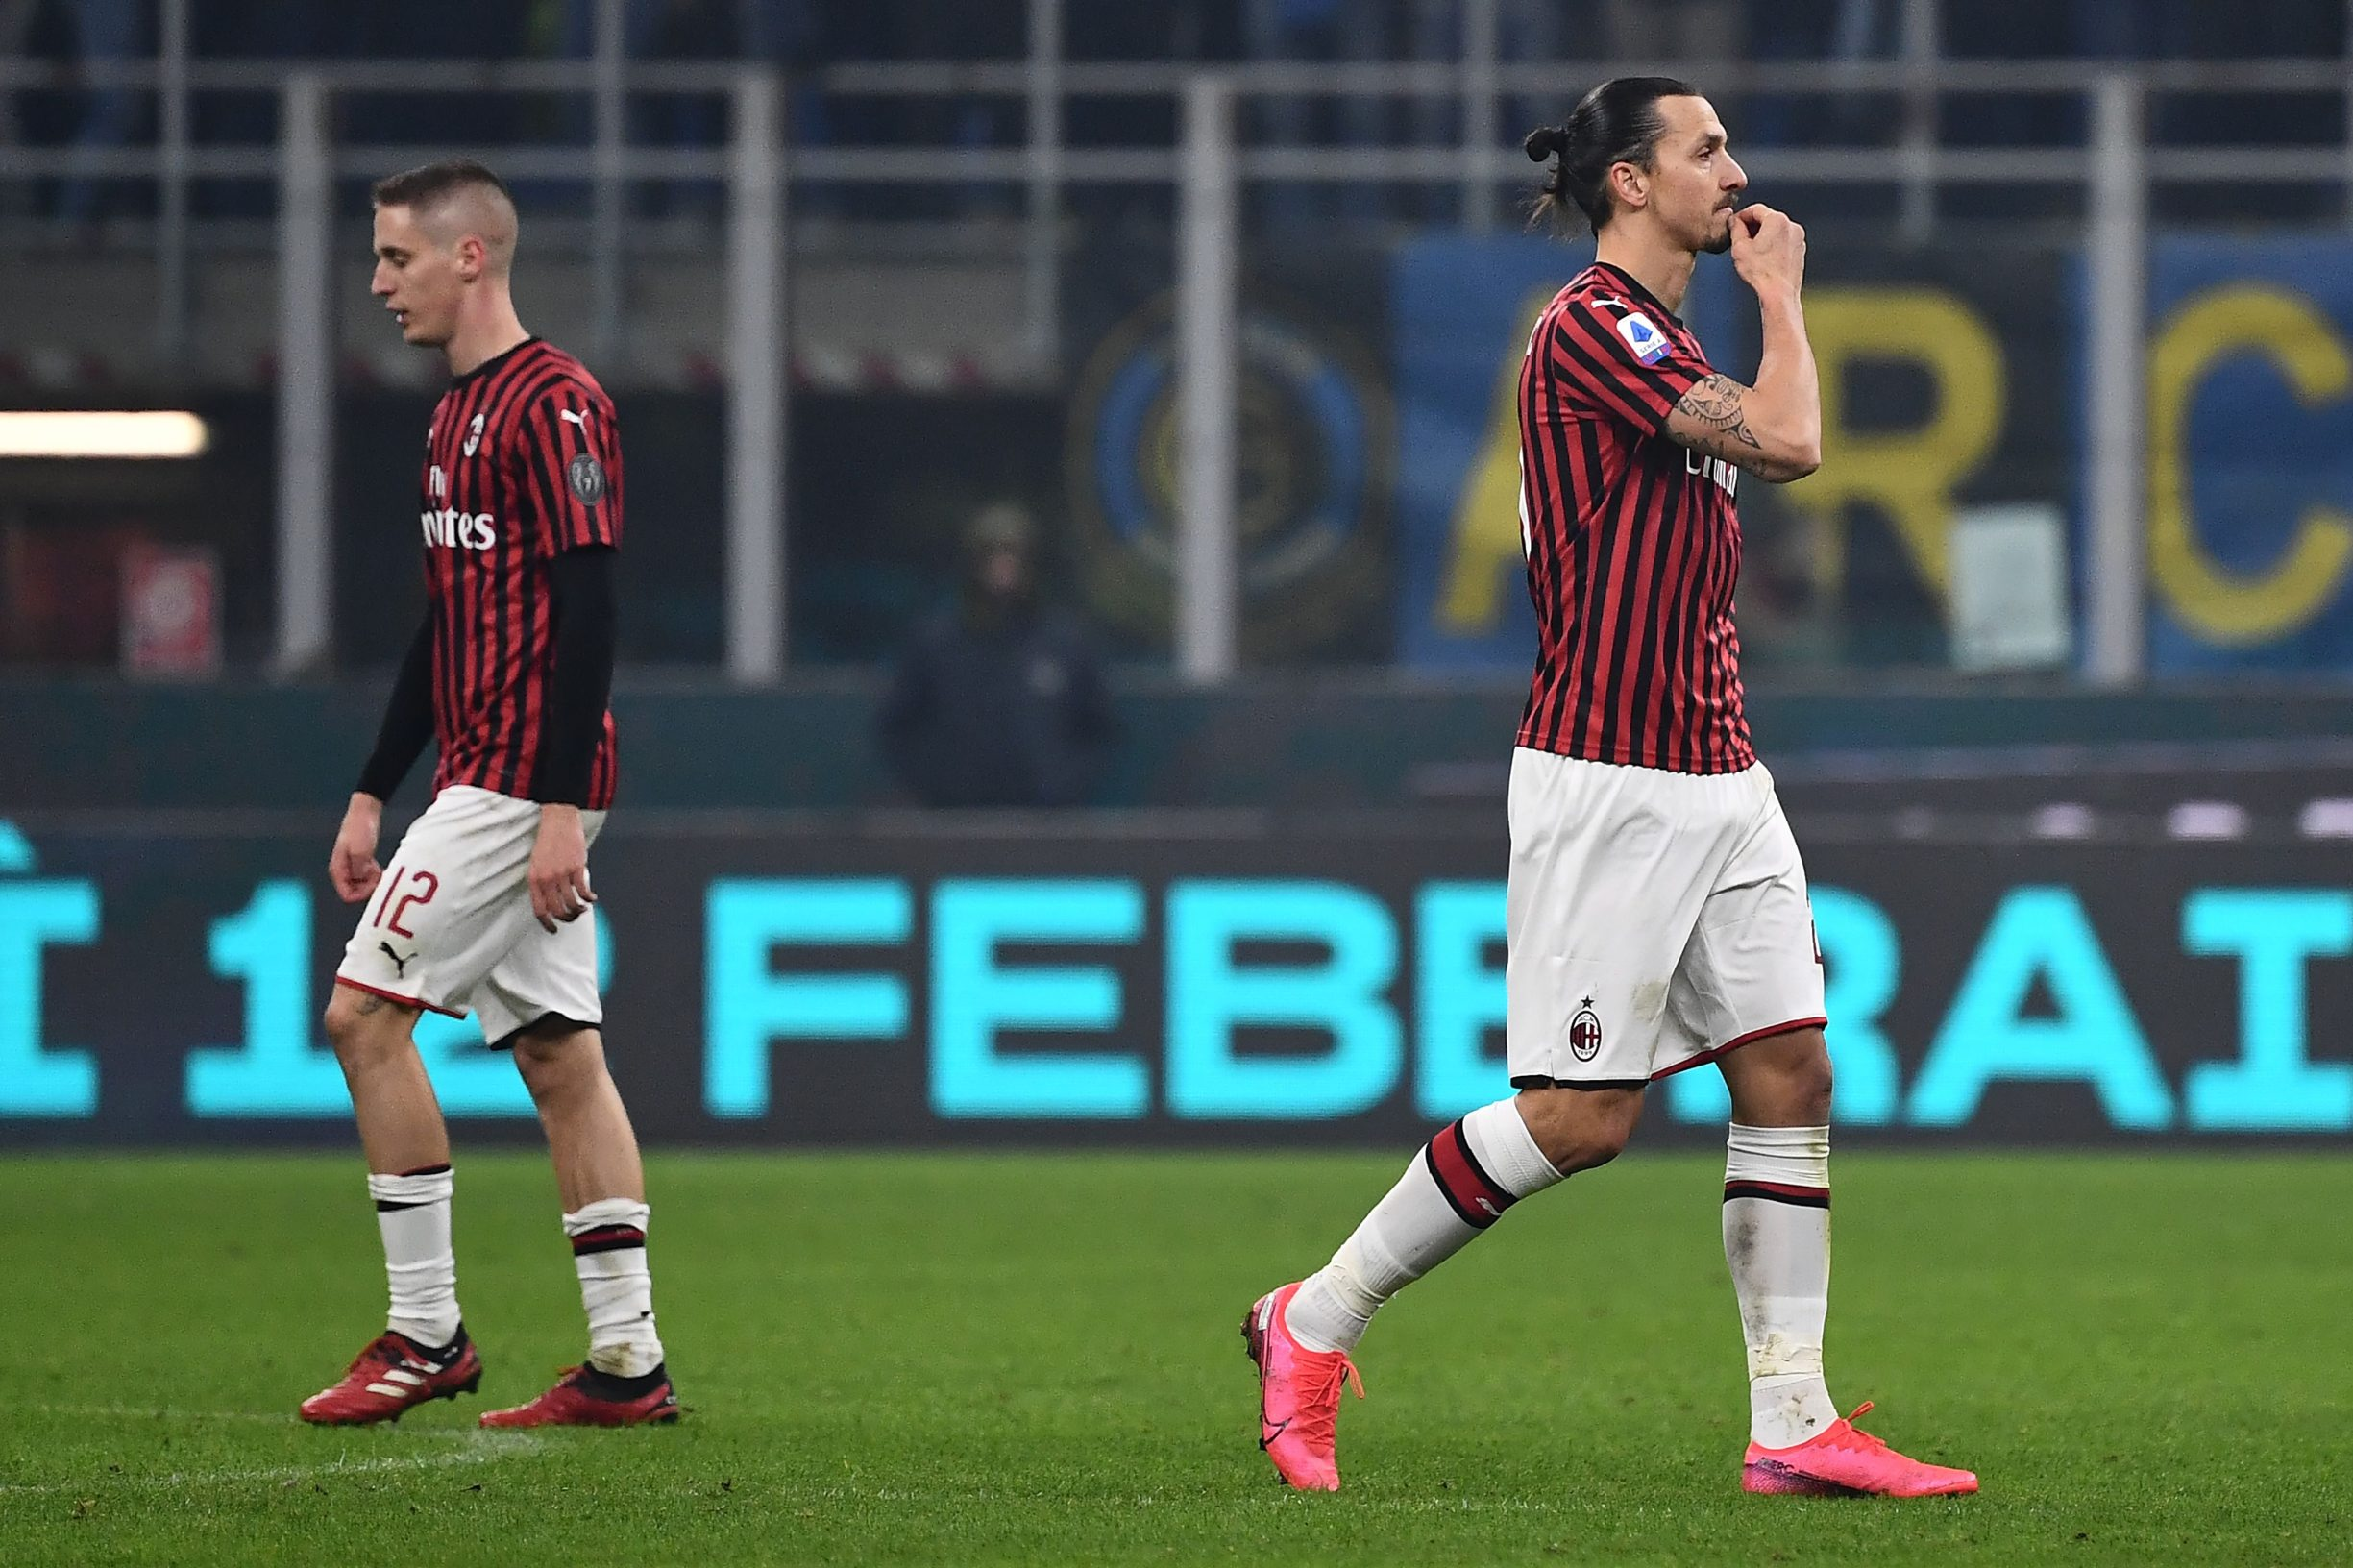 AC Milan's forward Zlatan Ibrahimovic from Sweden reacts at the end of during the Italian Serie A football match Inter Milan vs AC Milan on February 9, 2020 at the San Siro stadium in Milan. (Photo by MARCO BERTORELLO / AFP)